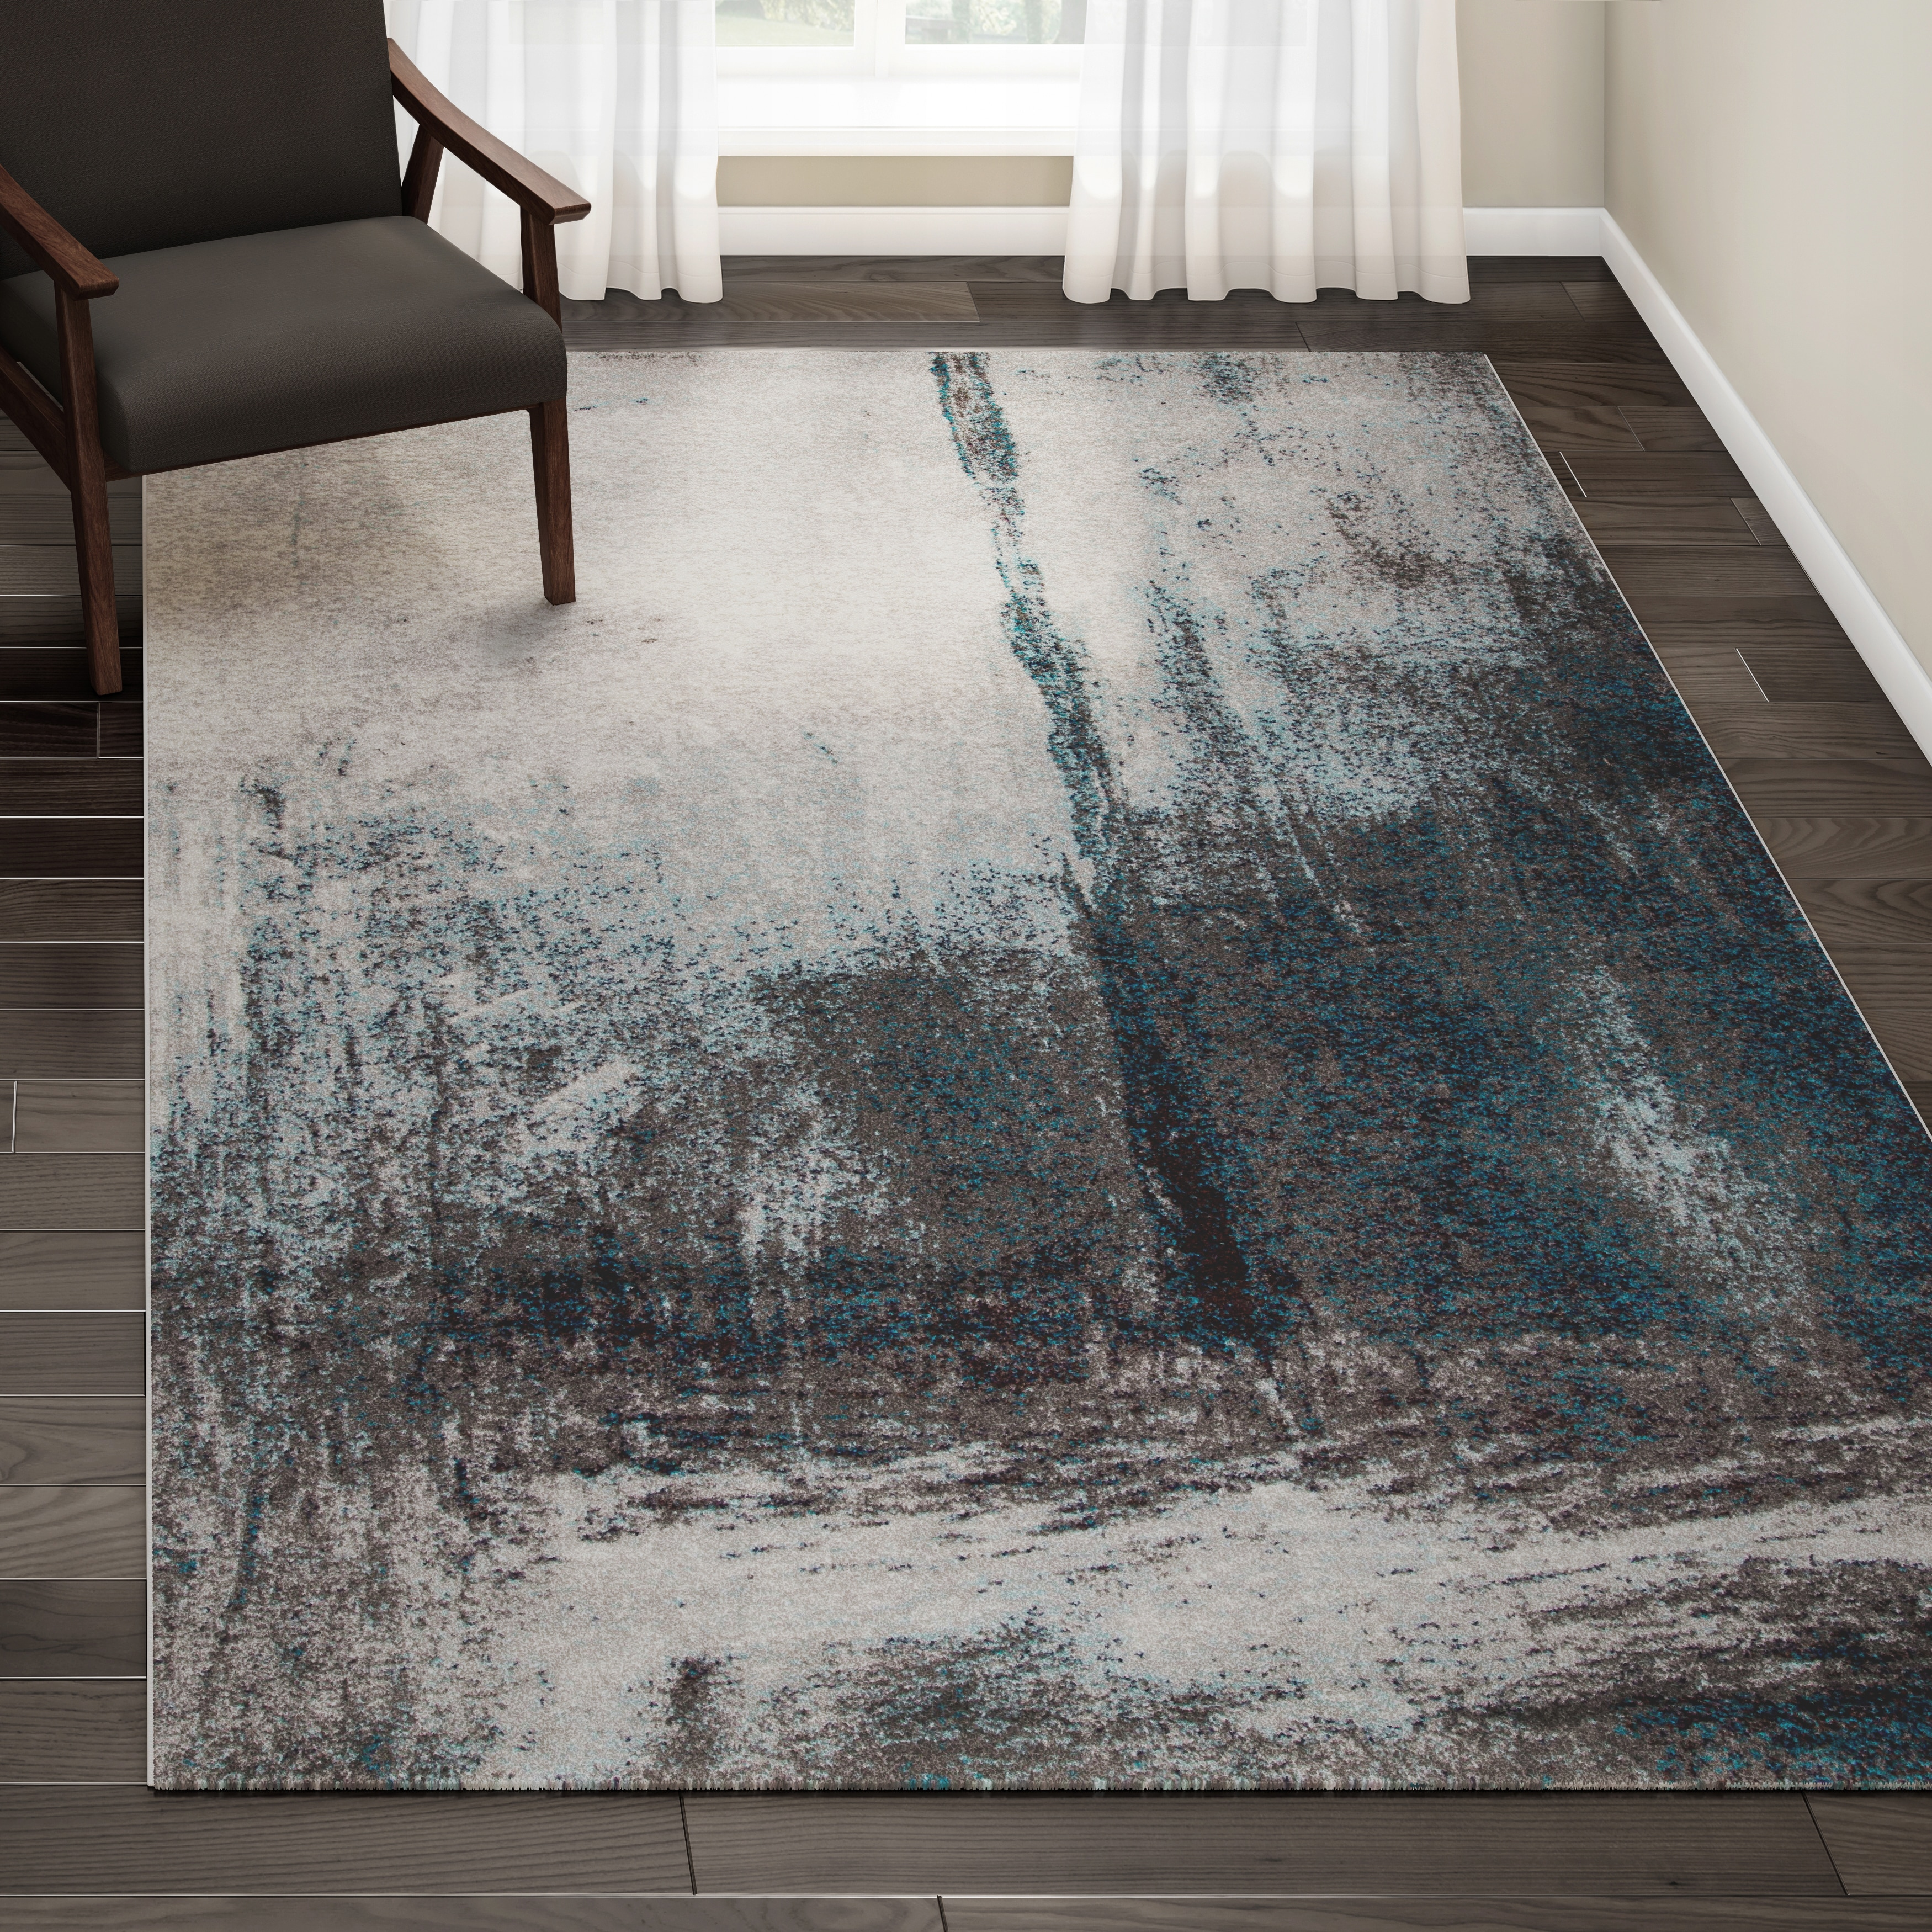 Strick bolton knight grey abstract painting area rug